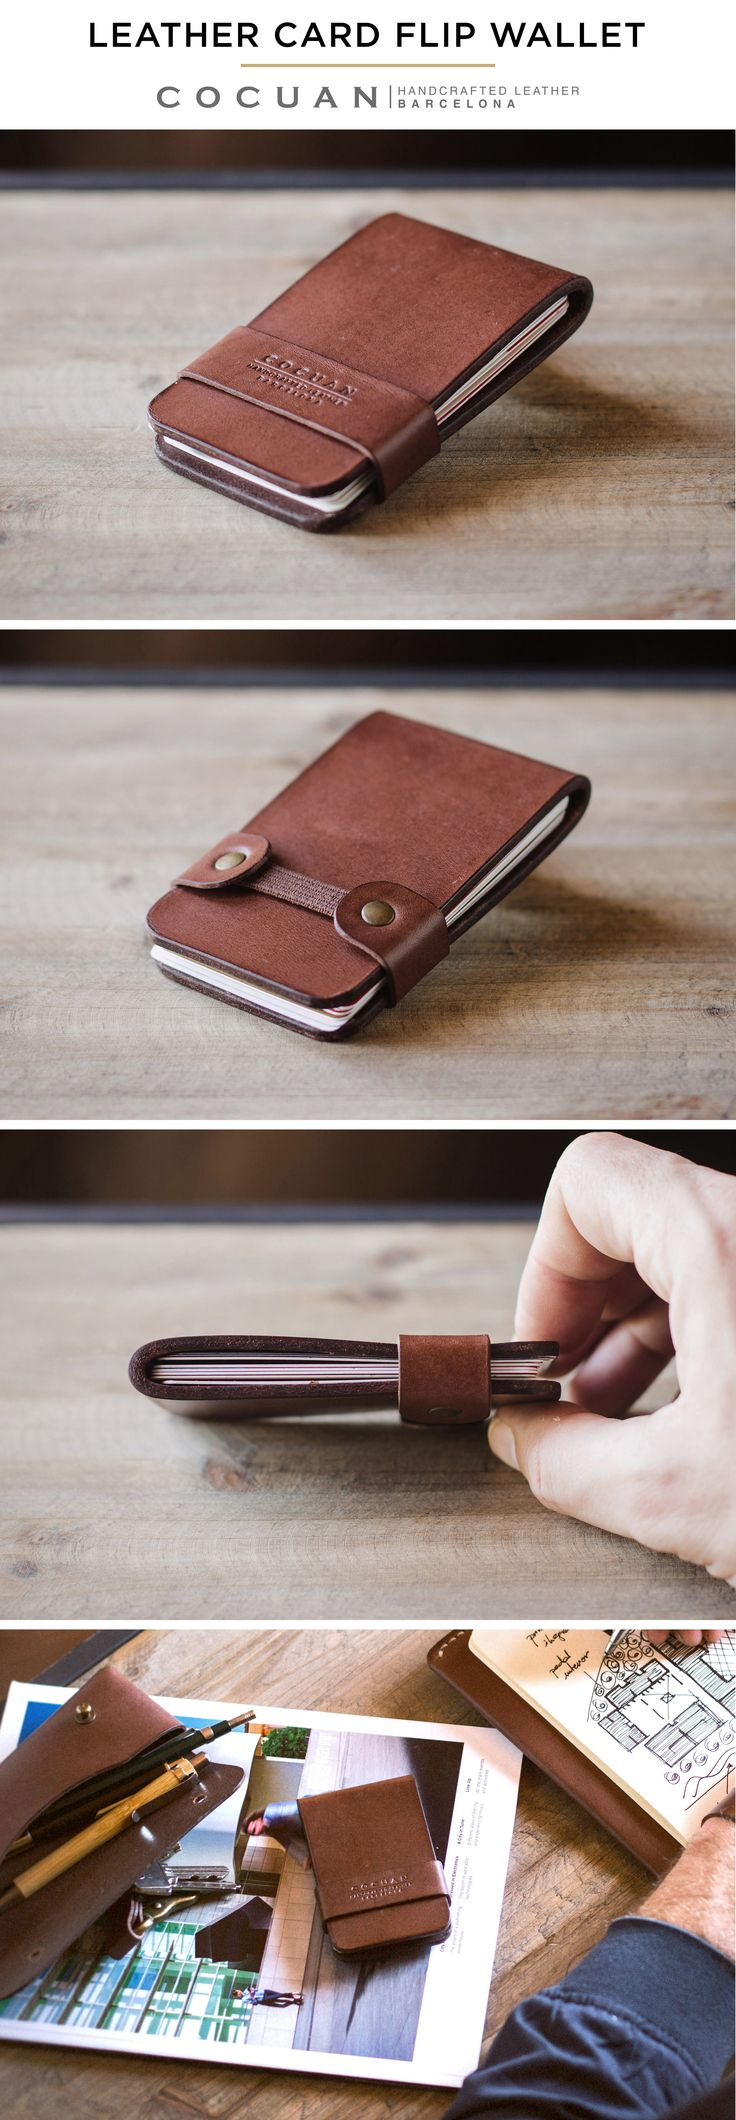 3036 Best Handmade Leather Wallets Images On Pinterest Leather